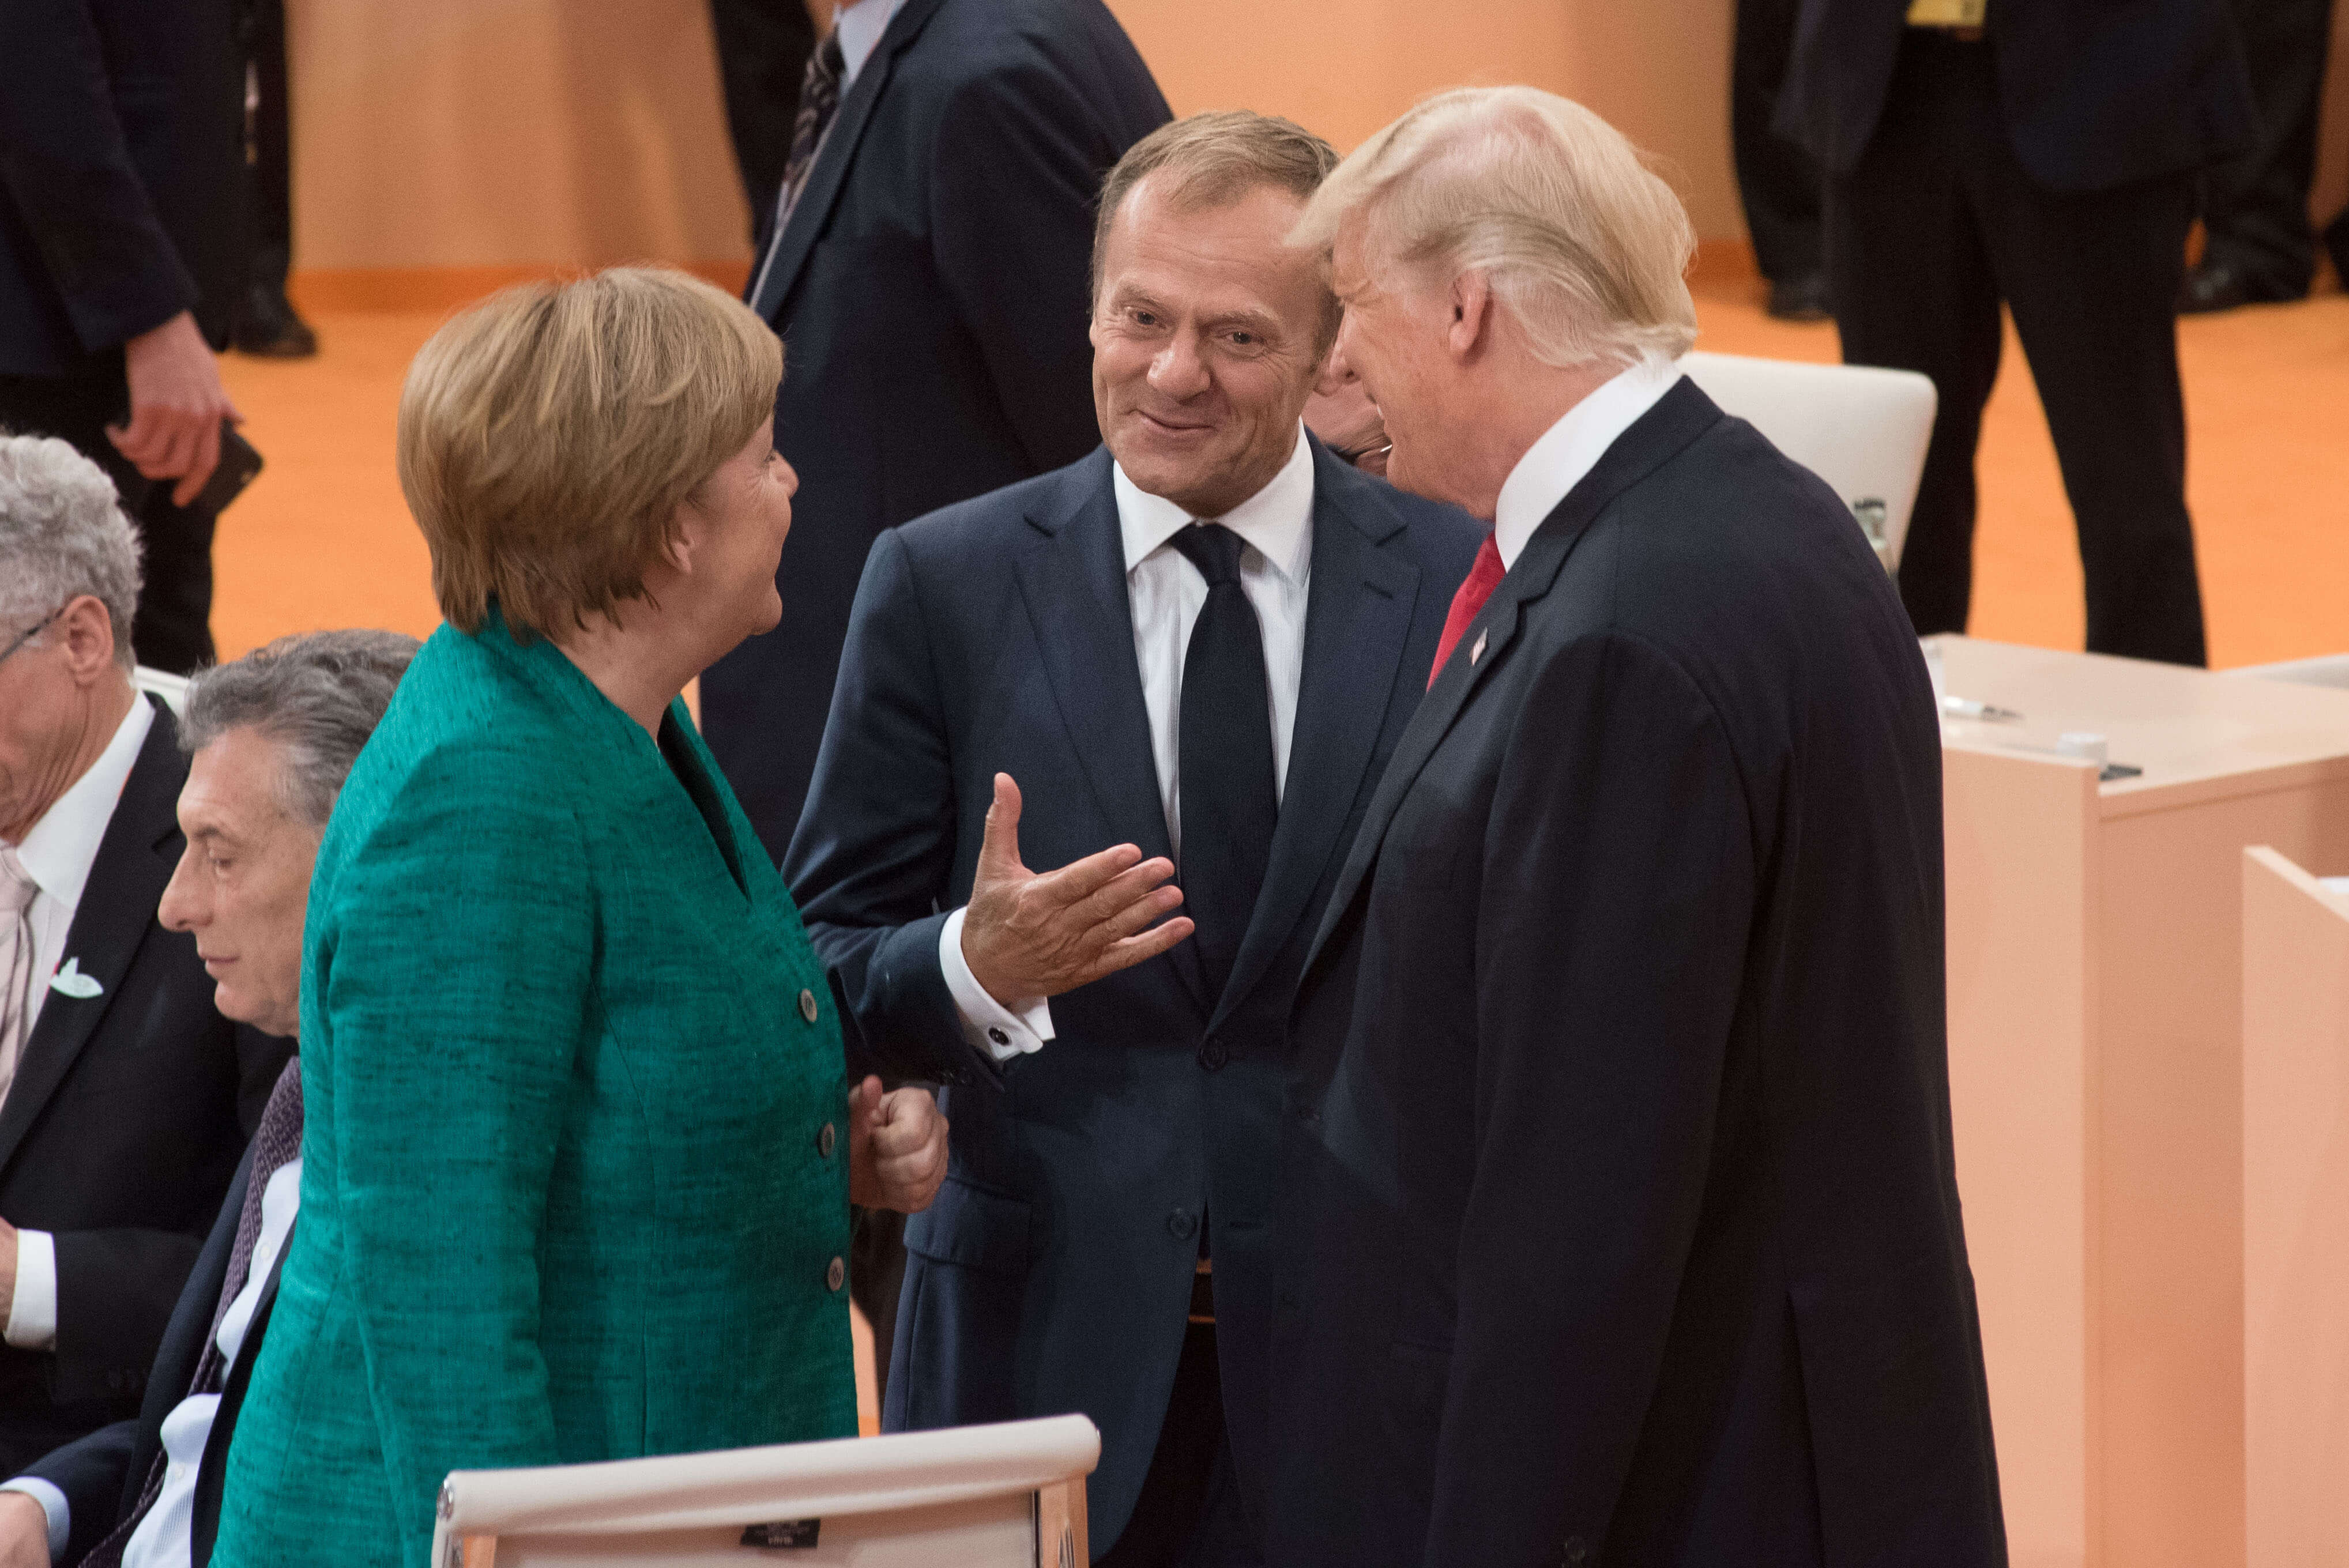 Angela Merkel met Donald Tusk en Donald Trump tijdens een G20-top in juli 2018-European Council President